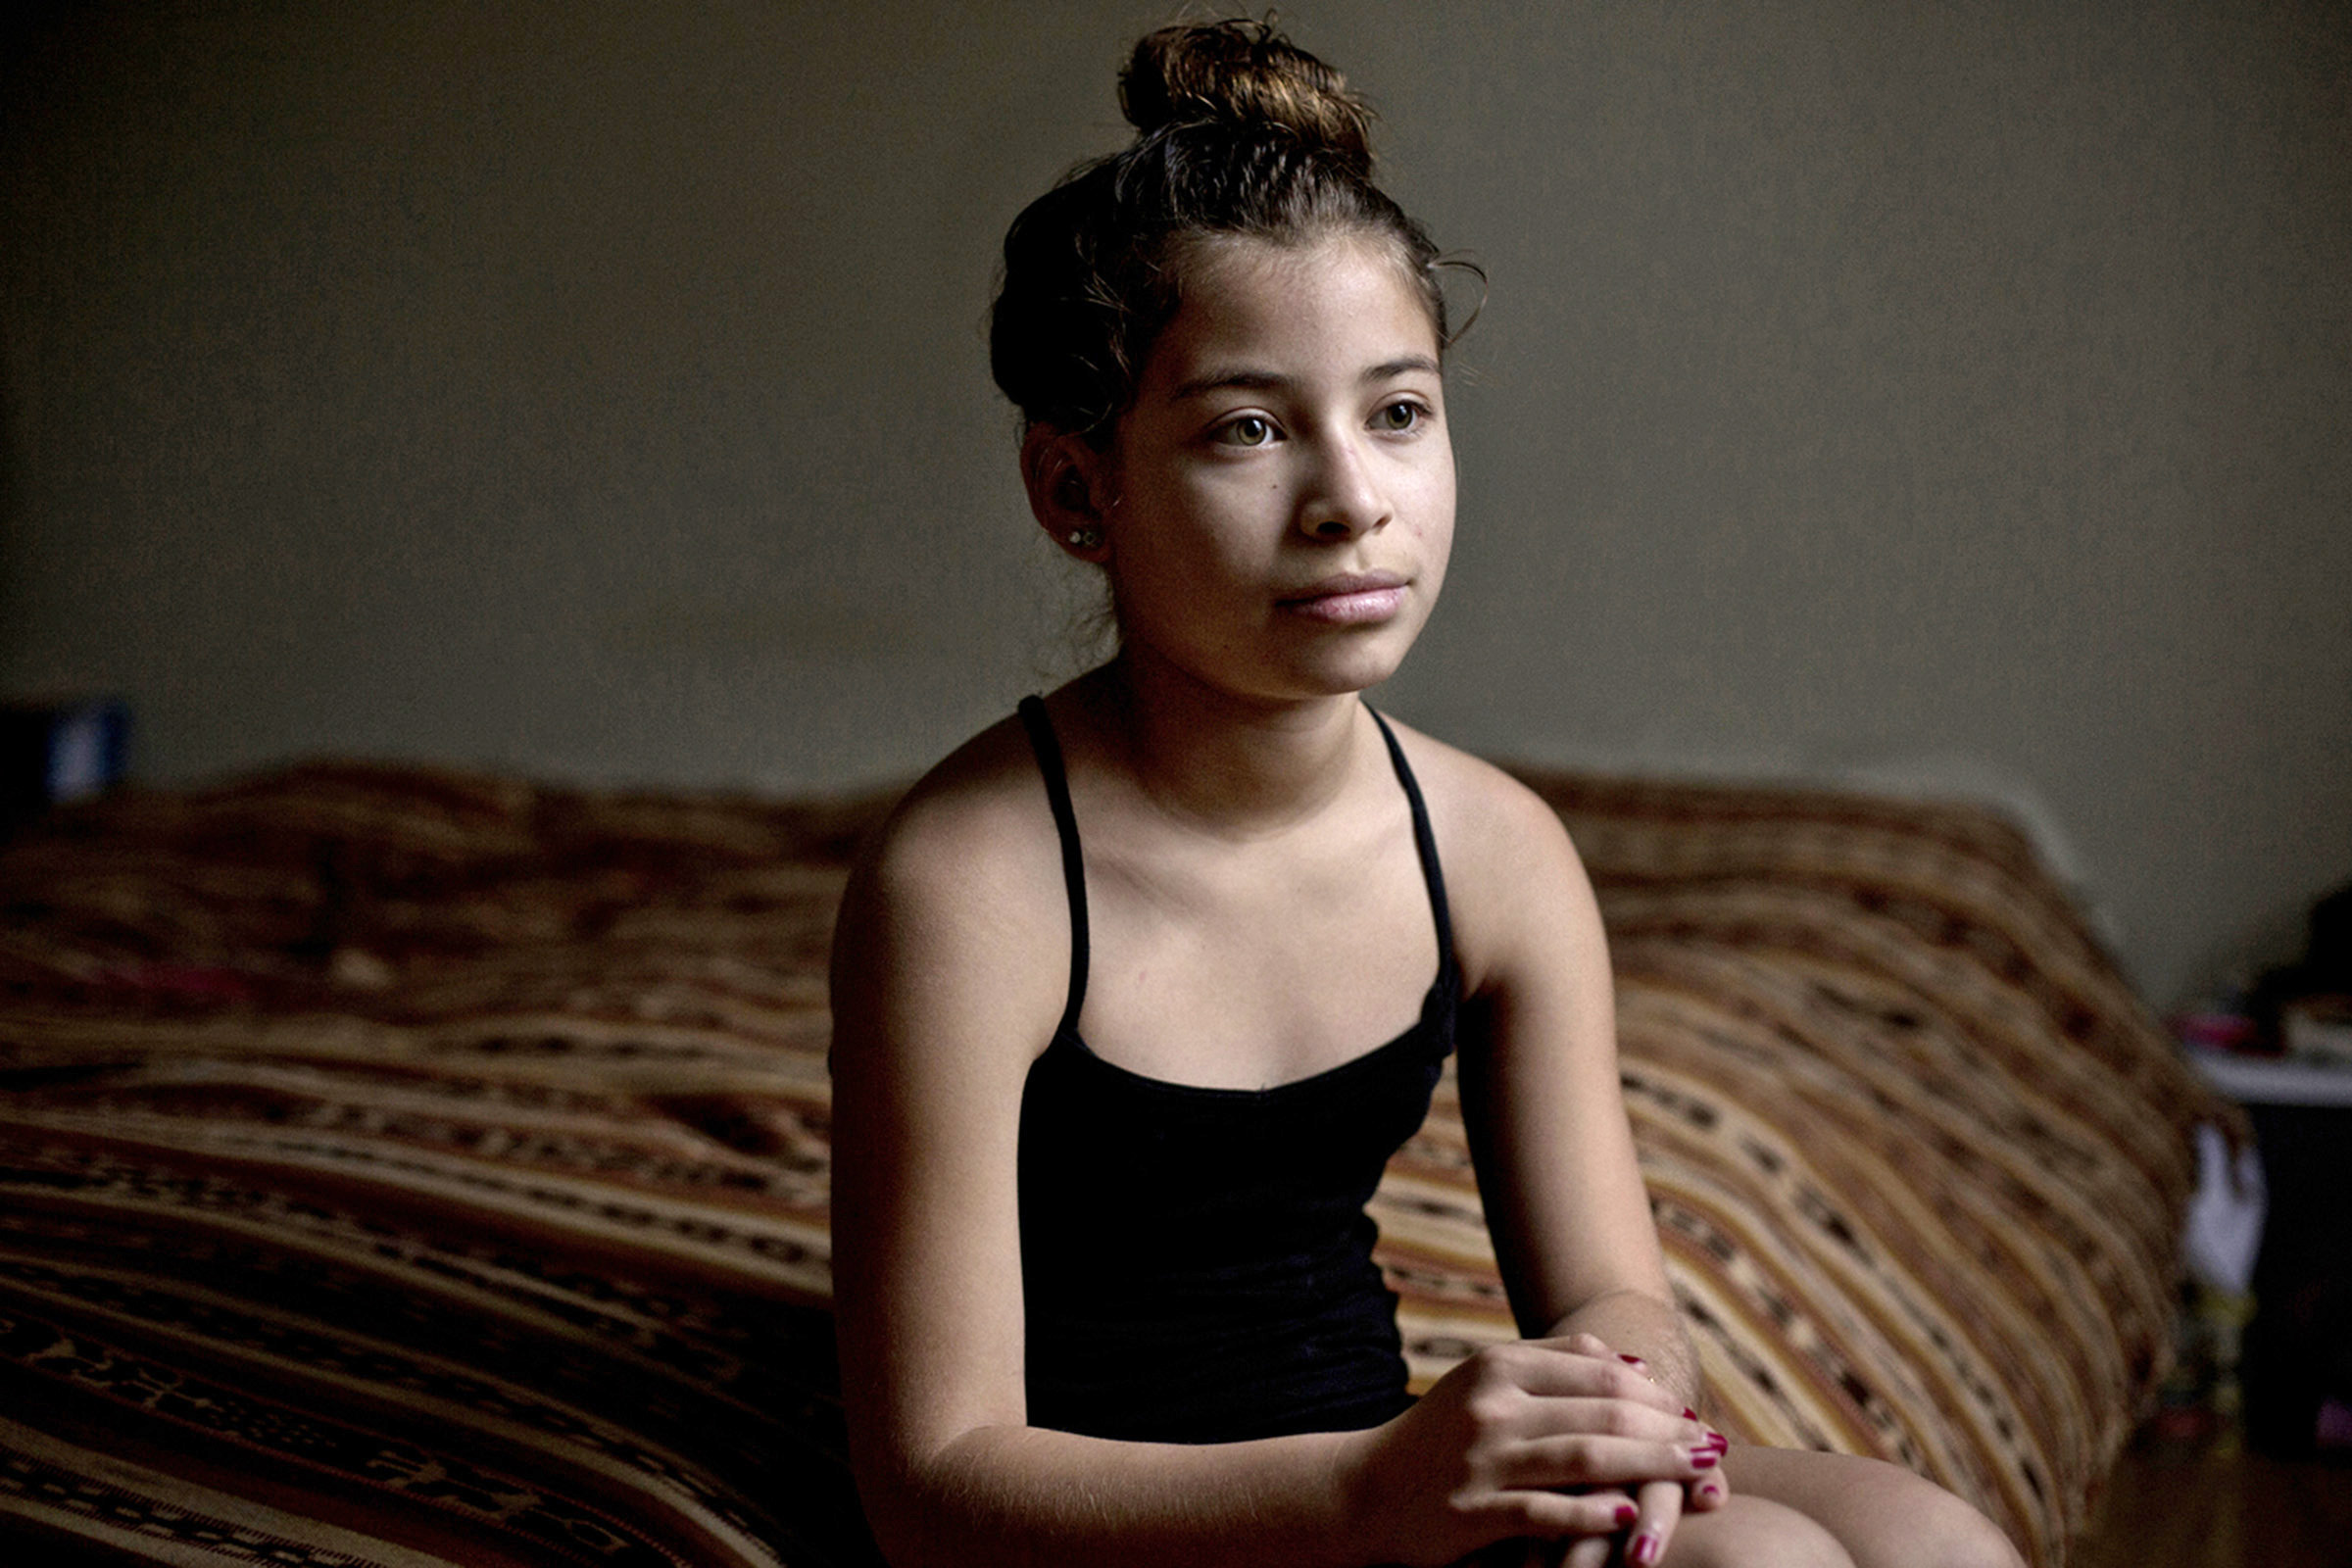 Nayda Espinoza, 12, poses for a portrait in her bedroom on the family ranch in Bowling Green, Kentucky. Nayda is sharing her bedroom with her parents until the family is done expanding the house. (Photo by Betina Garcia/GroundTruth)